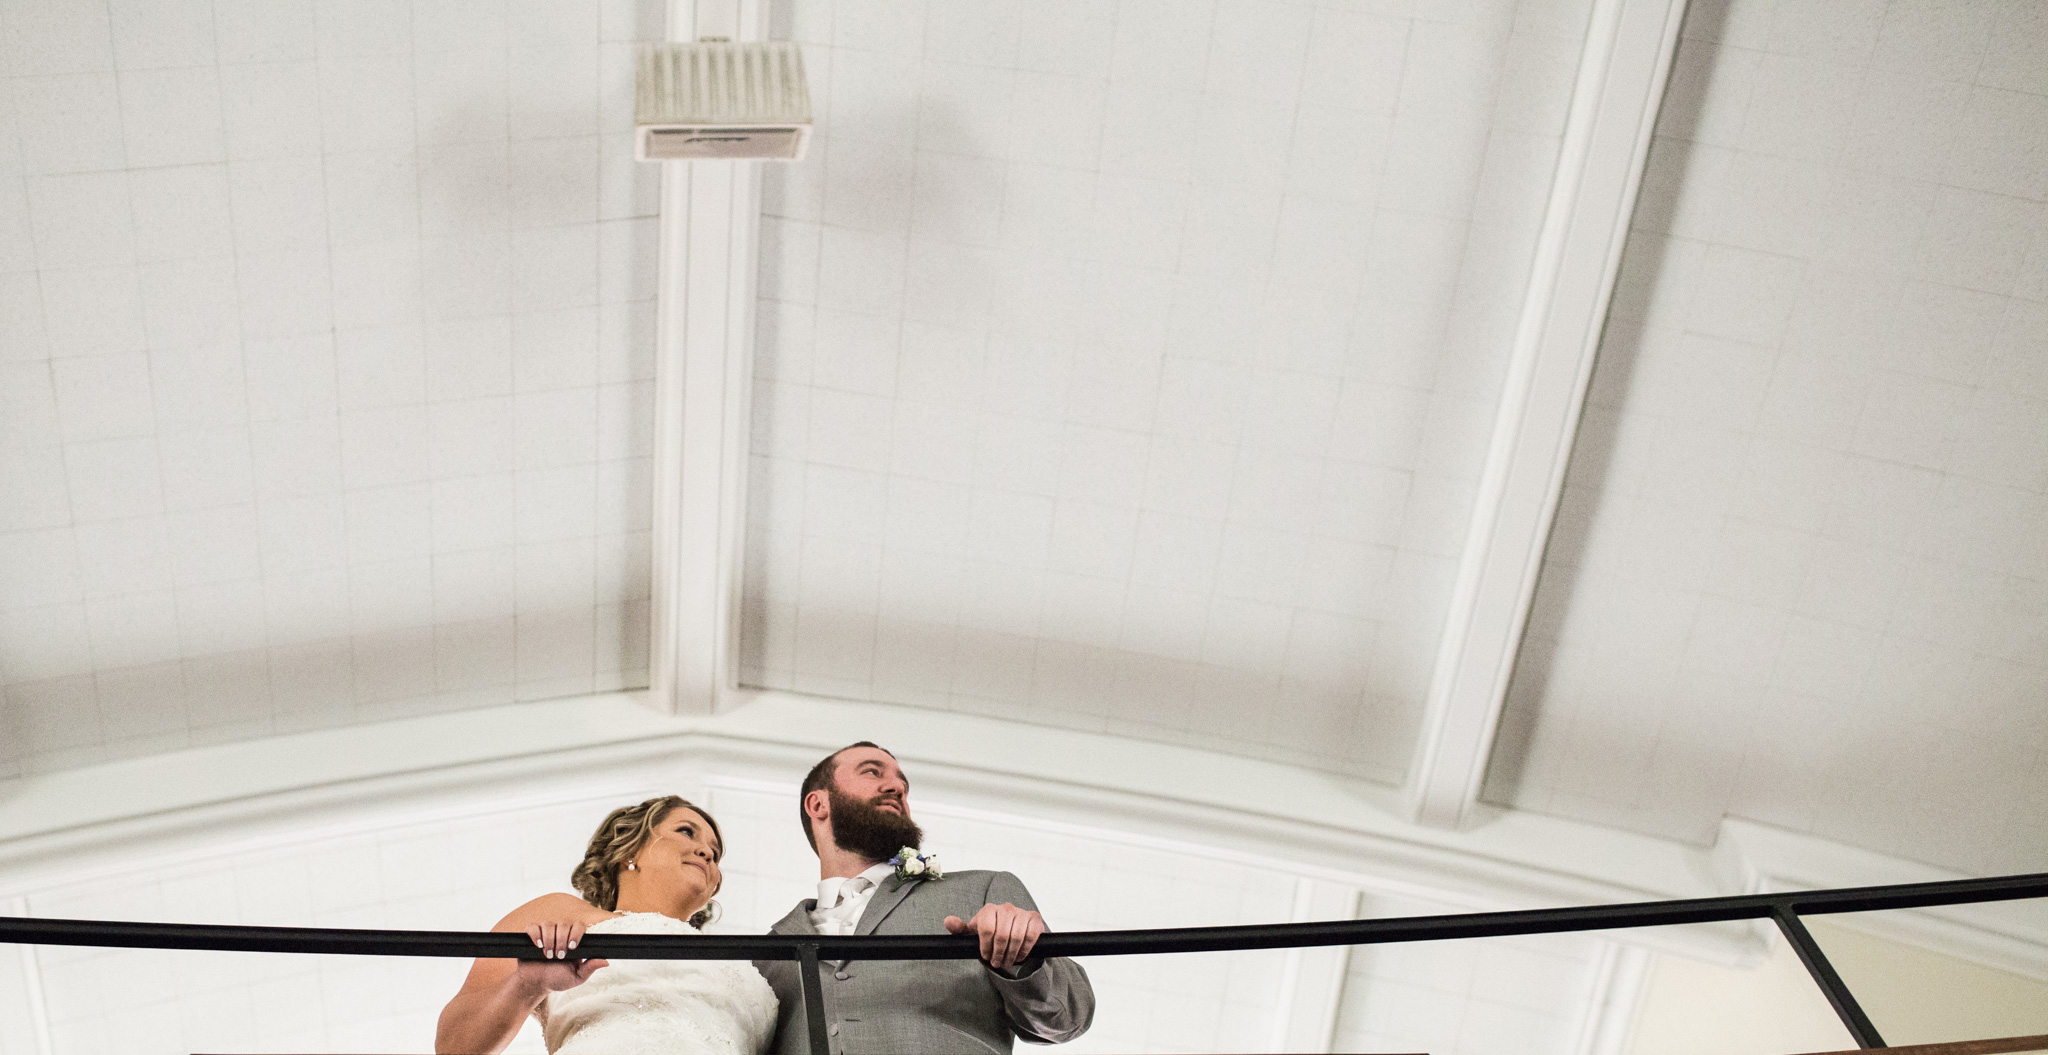 Zibell Spring Wedding, Bride and Groom, Powerful, Connected, Exploration, Laura Duggleby Photography -79.JPG